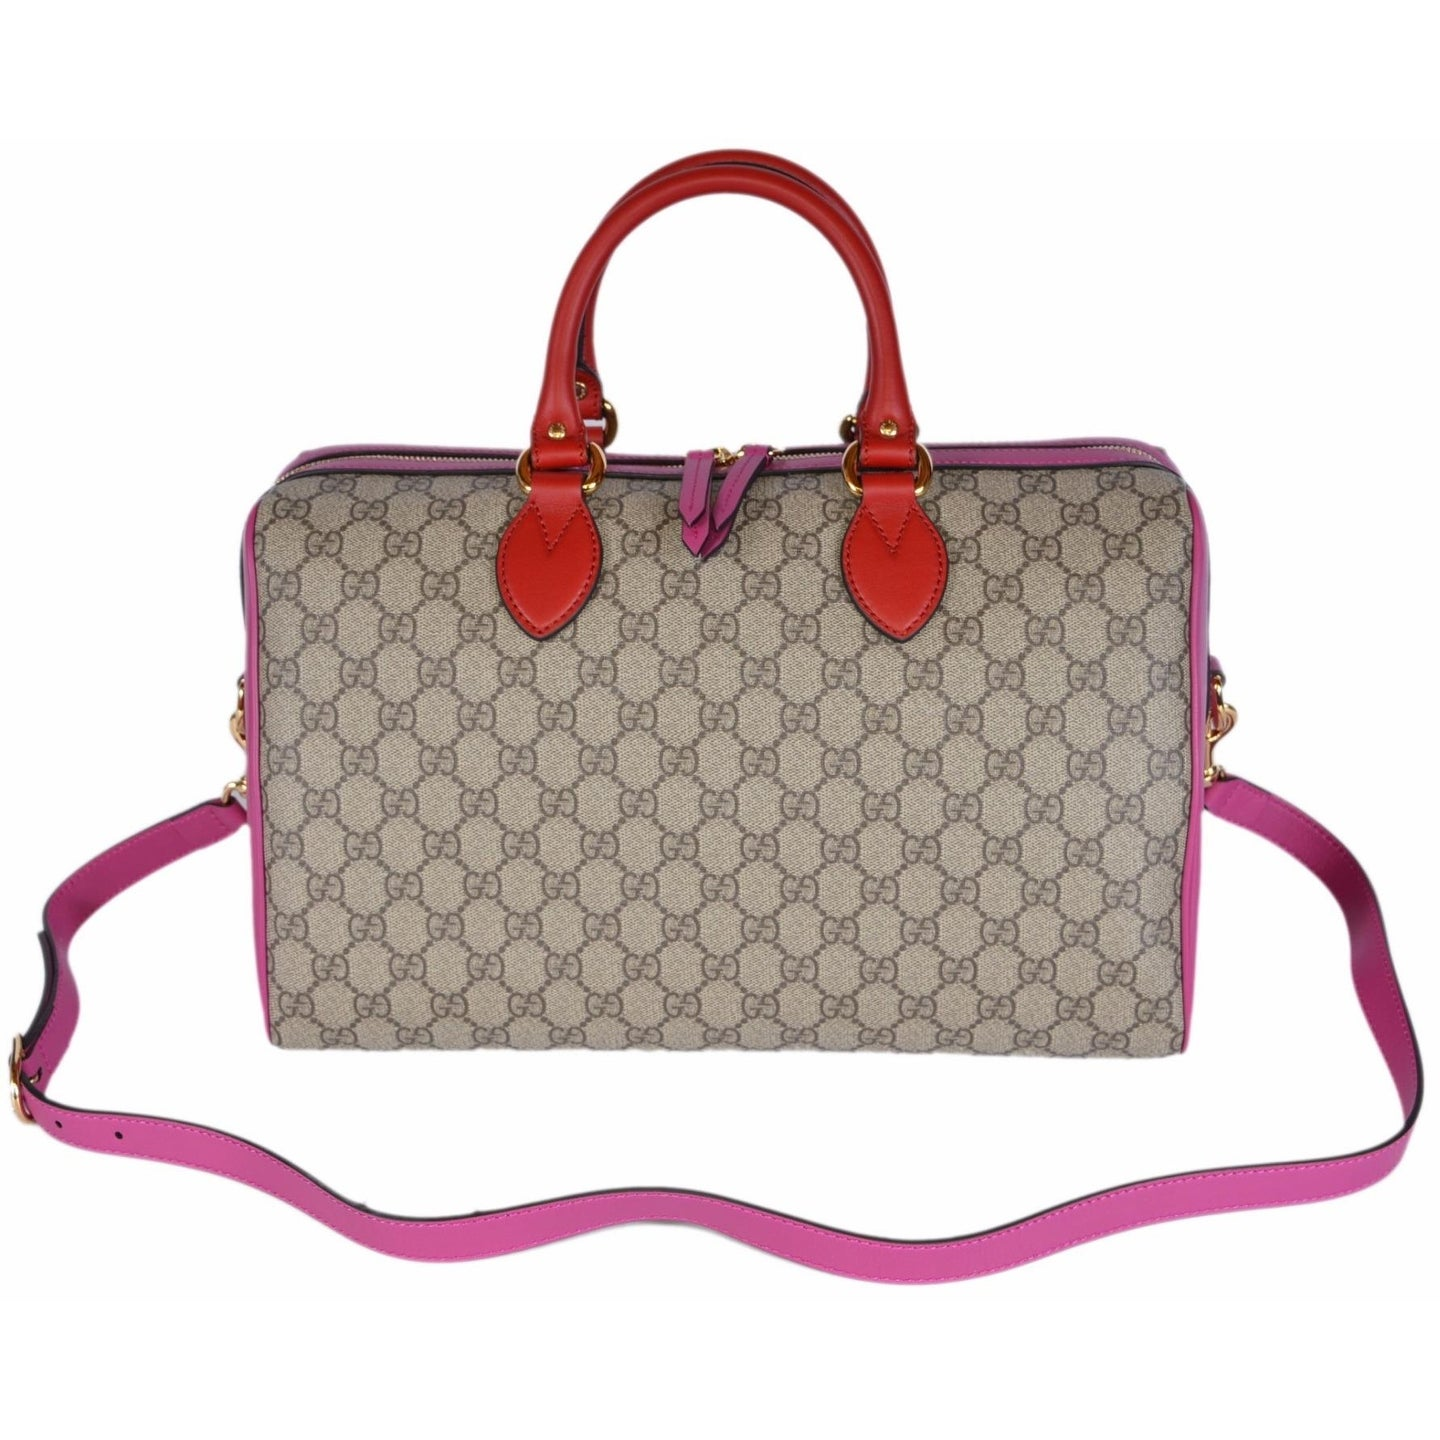 fb7236320a158c Shop Gucci Women's 409527 GG Supreme Guccissima Convertible Boston Bag  Purse - ebony beige|pink|red - Free Shipping Today - Overstock - 15949710